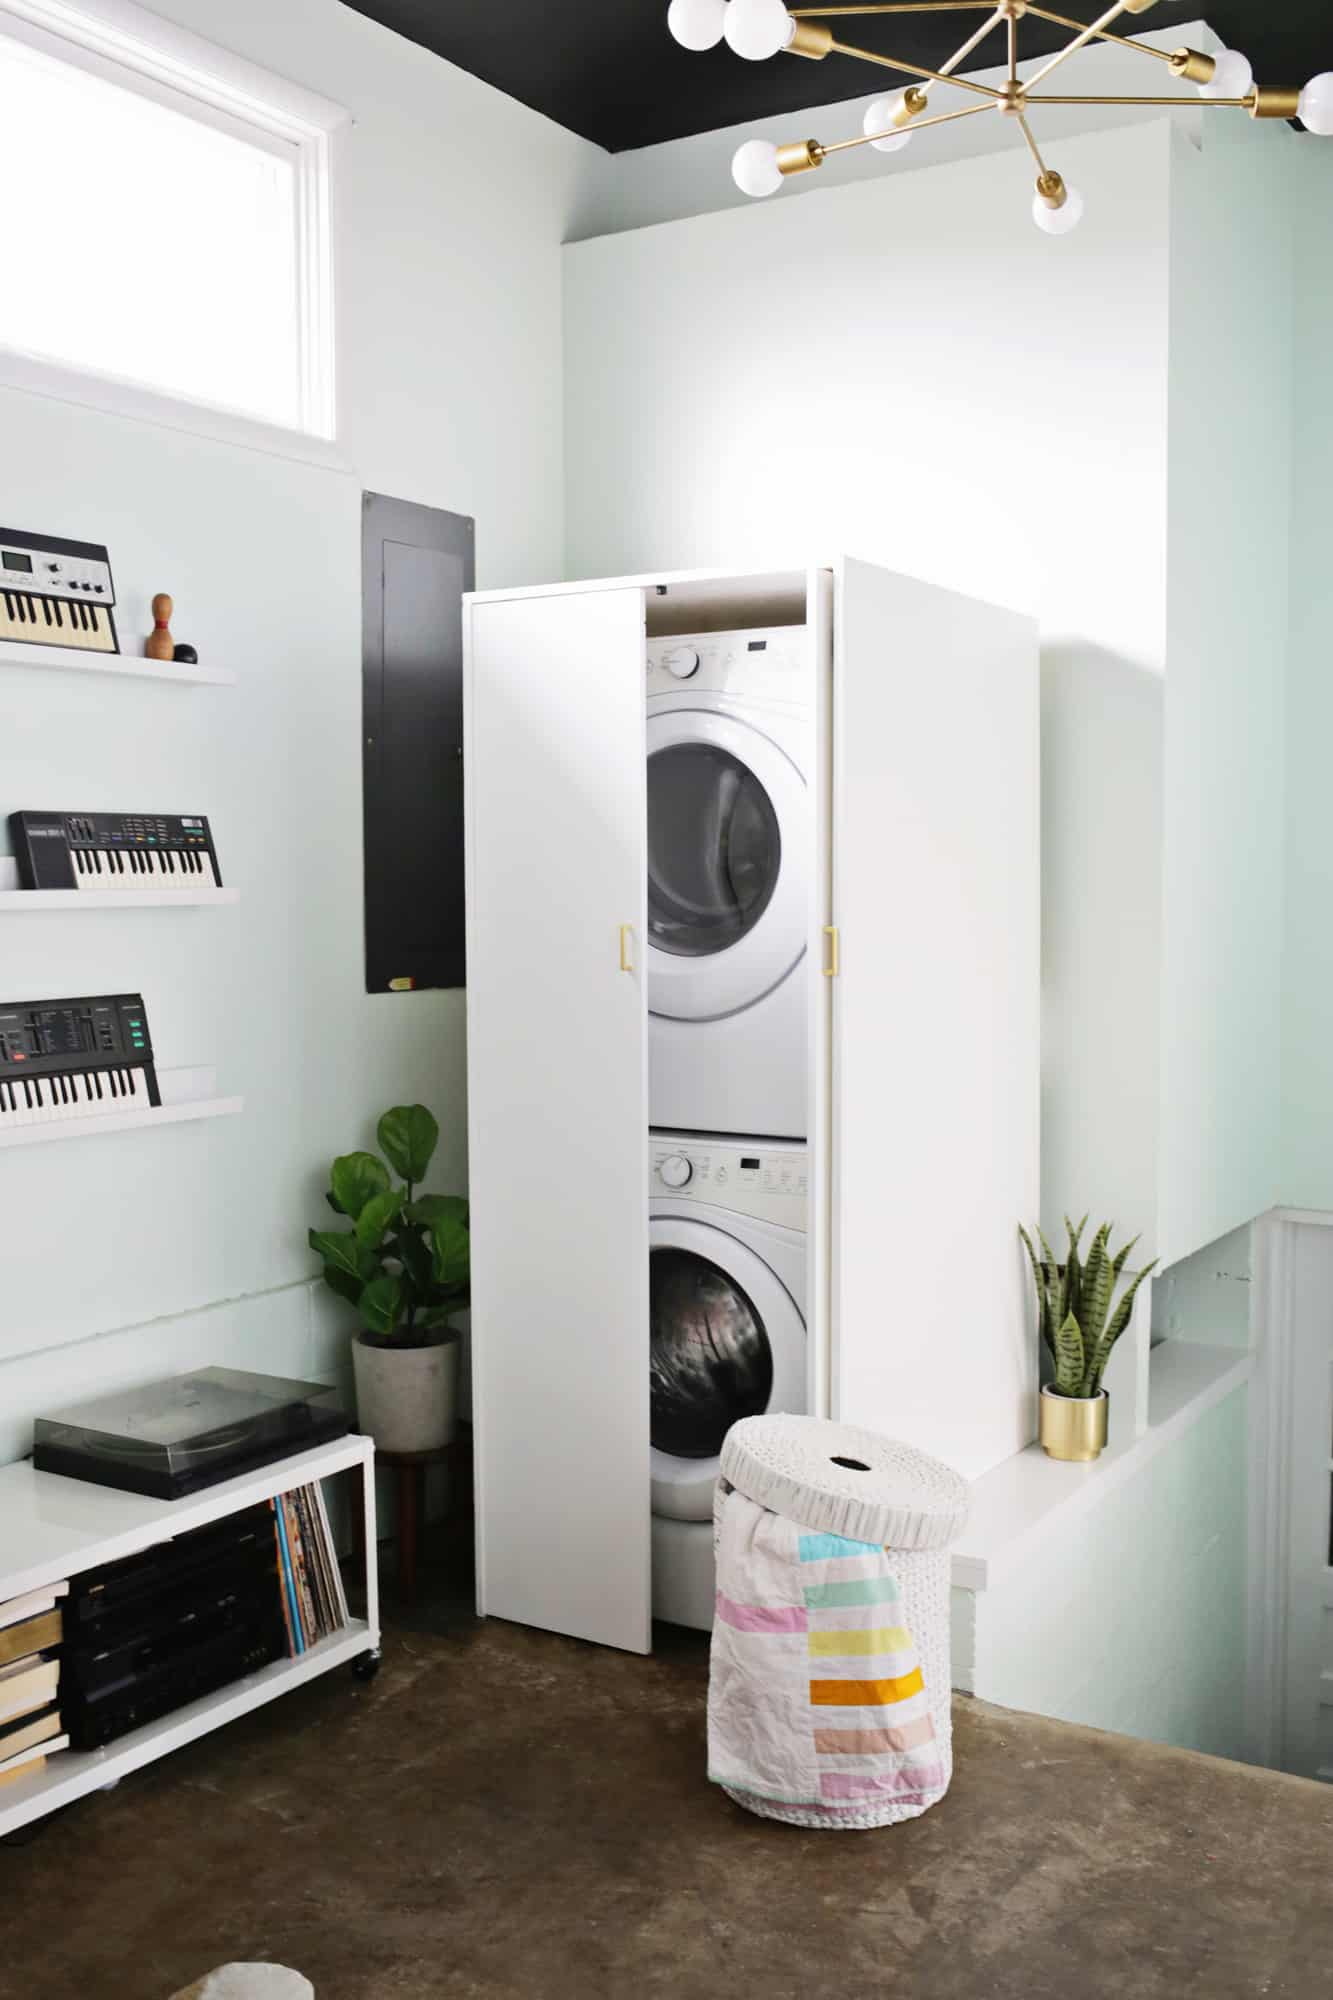 Washer And Dryer Cabinet A, How To Build Cabinets Hide Washer And Dryer